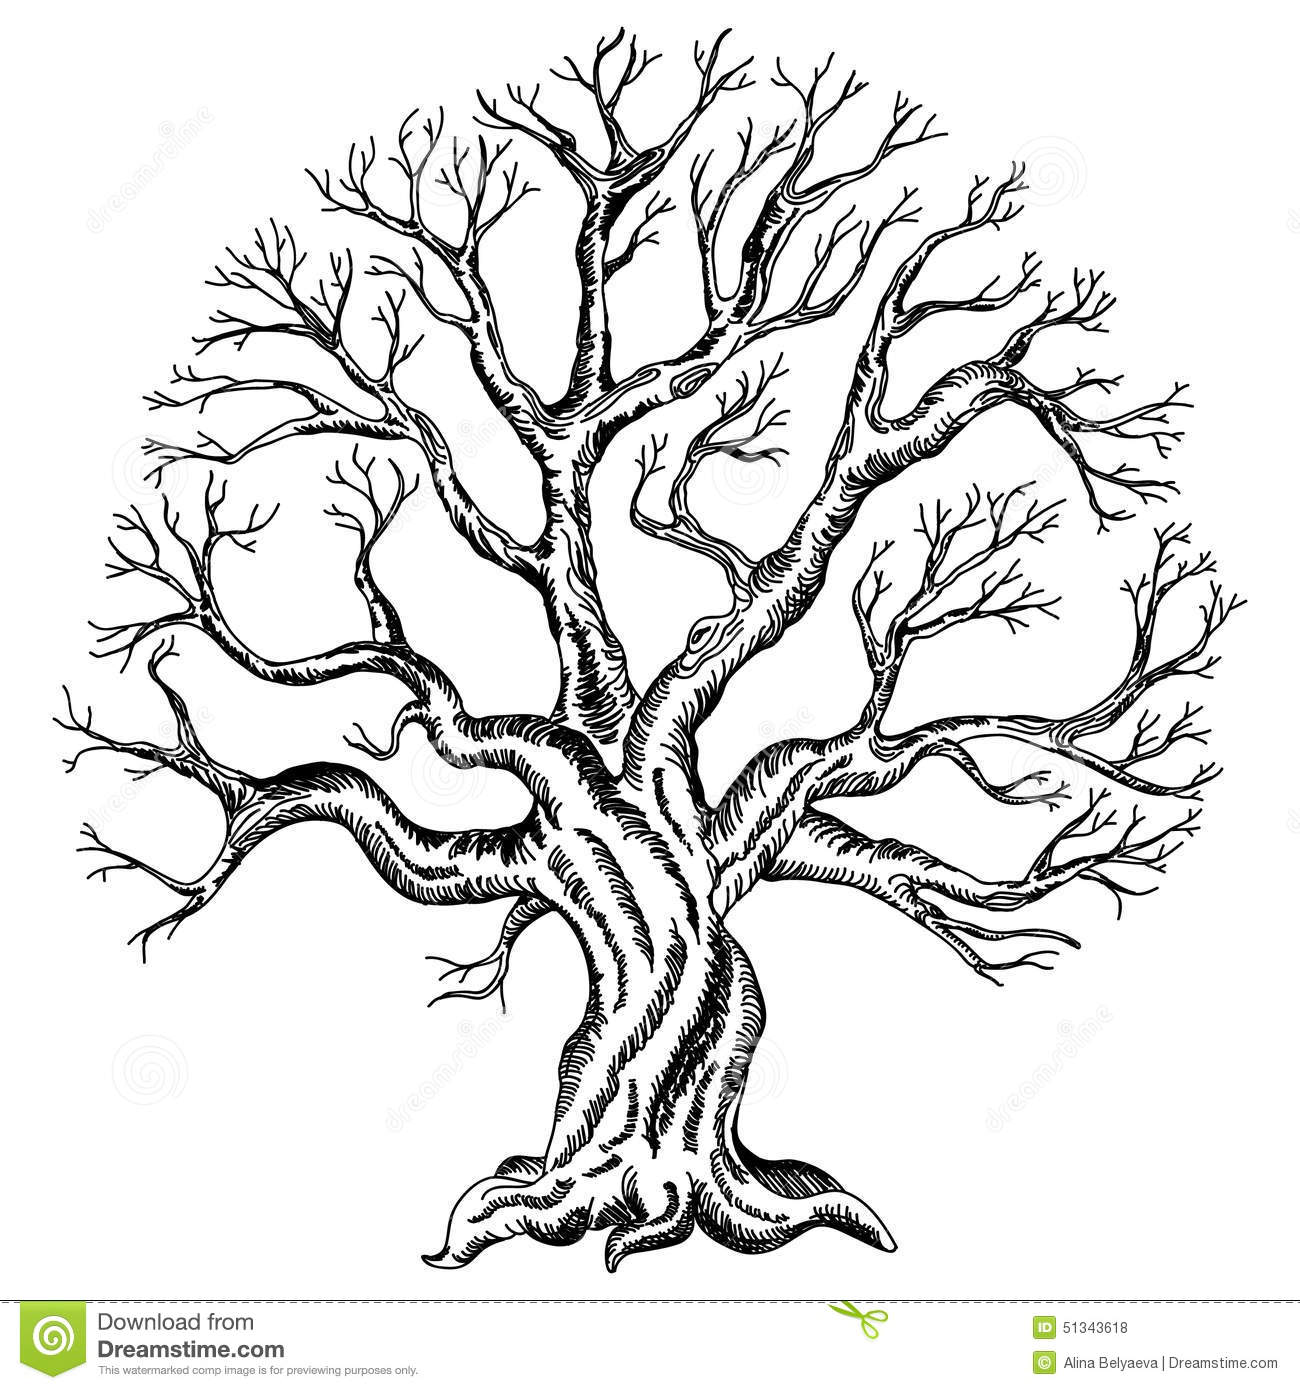 Dessin De Vecteur De L Arbre Illustration De Vecteur